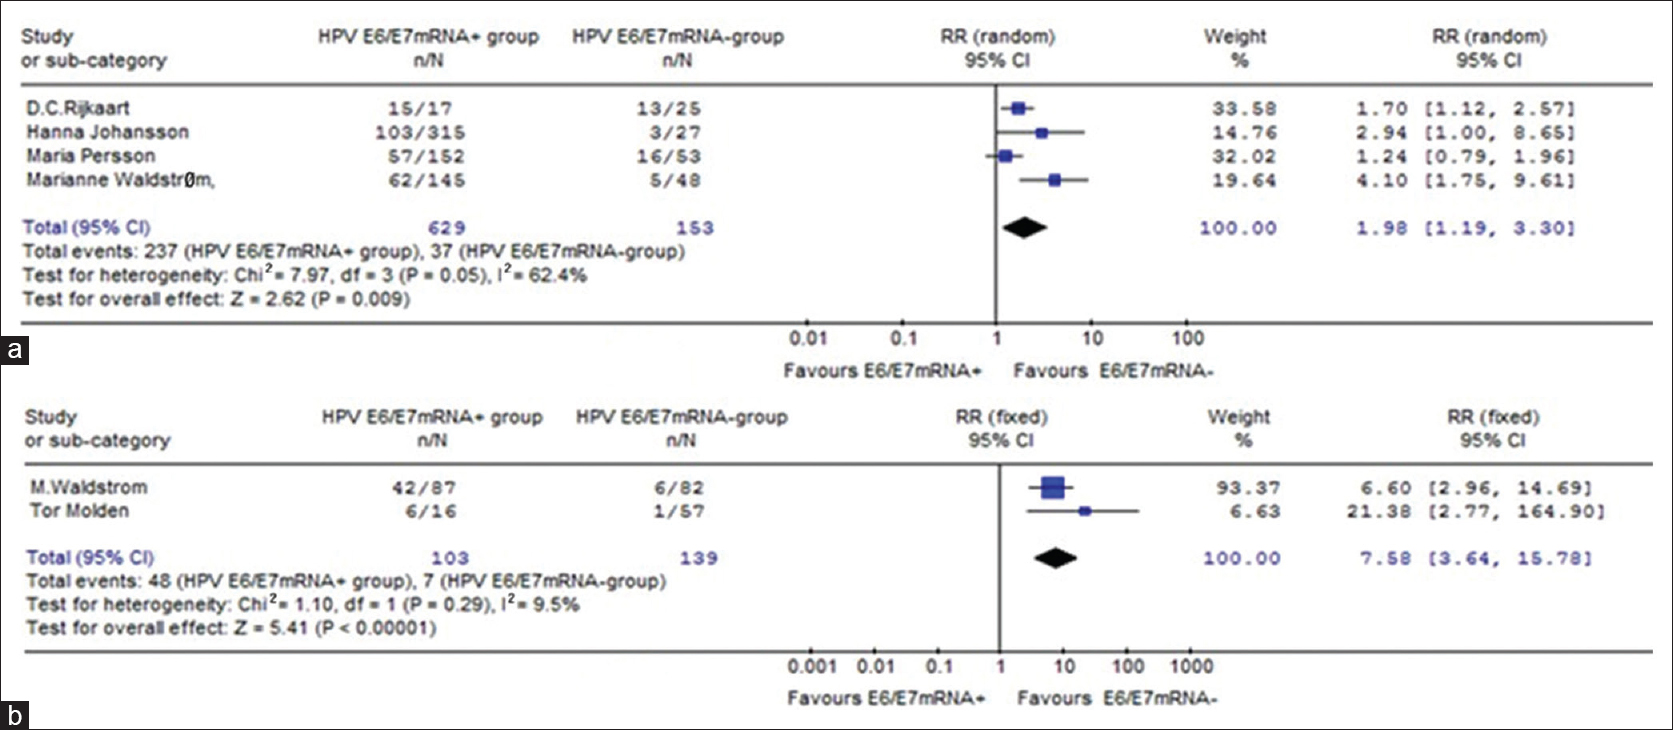 RRML - α-HPV positivity analysis in a group of patients with melanoma and non-melanoma skin cancers